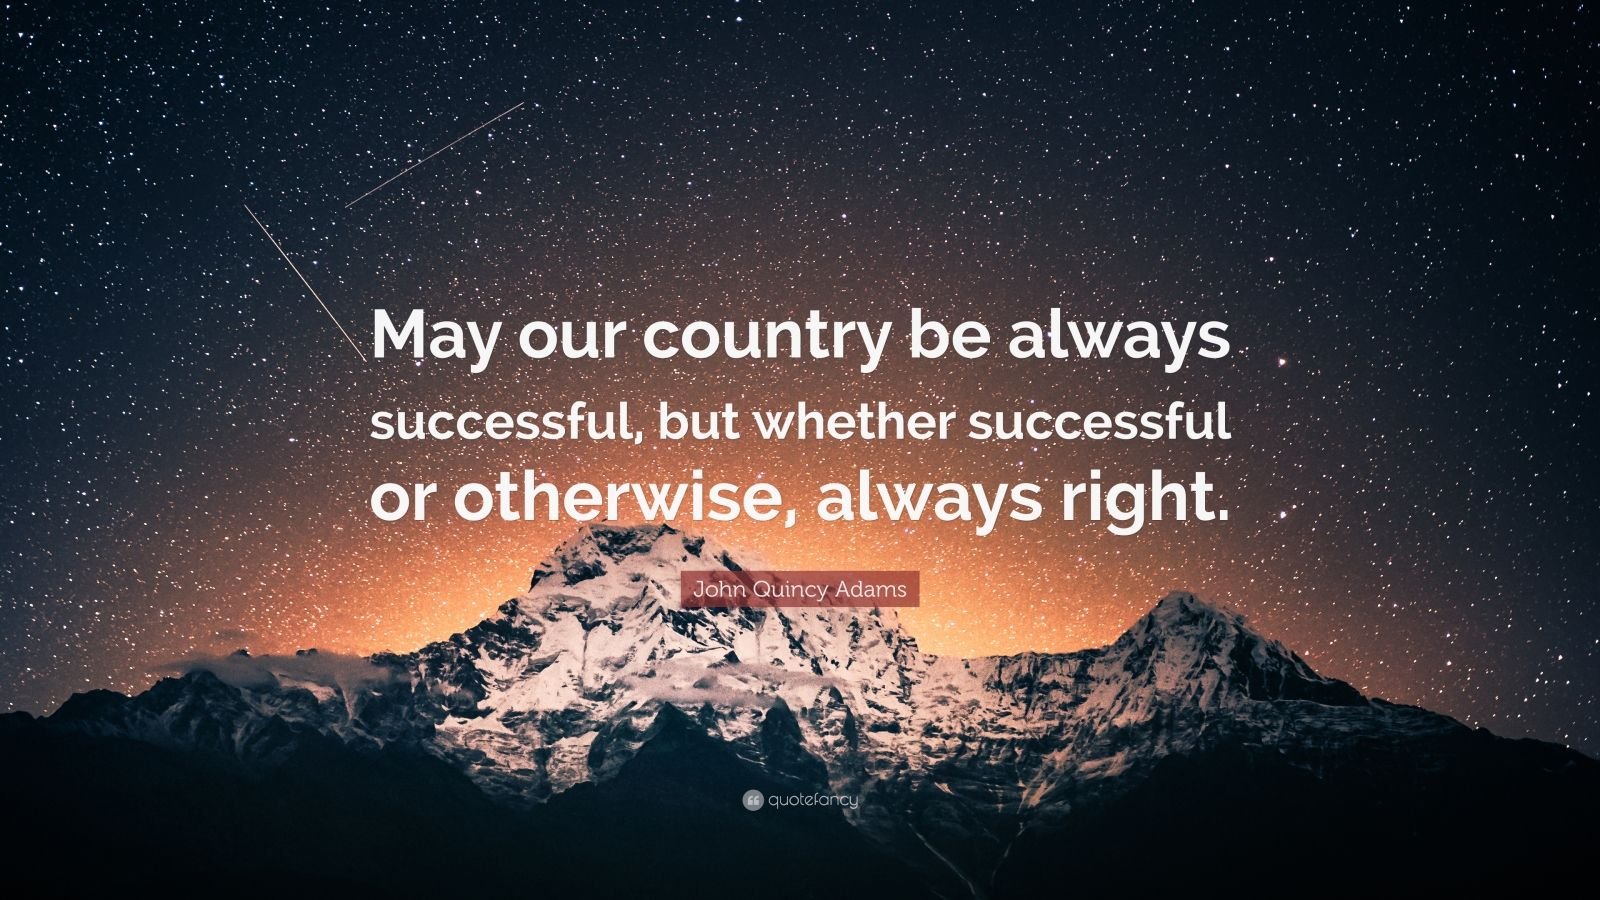 """John Quincy Adams Quote: """"May our country be always successful, but whether successful or otherwise, always right."""""""